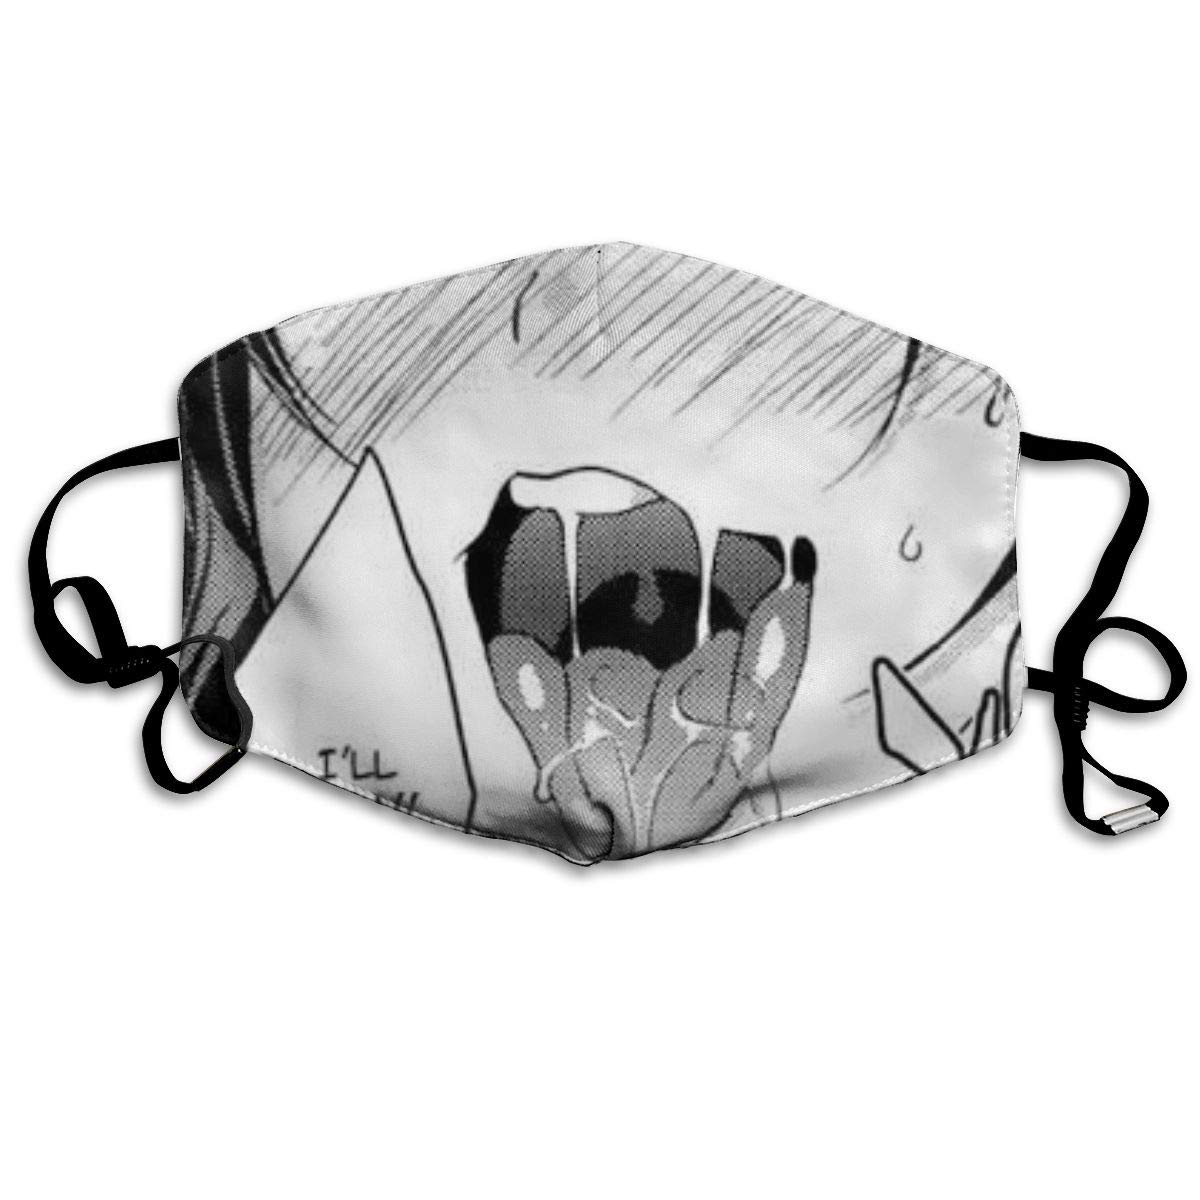 Dust Face Mask Ahegao O-Face Mouth Mask Washeable Reusable Face Mouth Mask Protection Anti Pollution Respirator